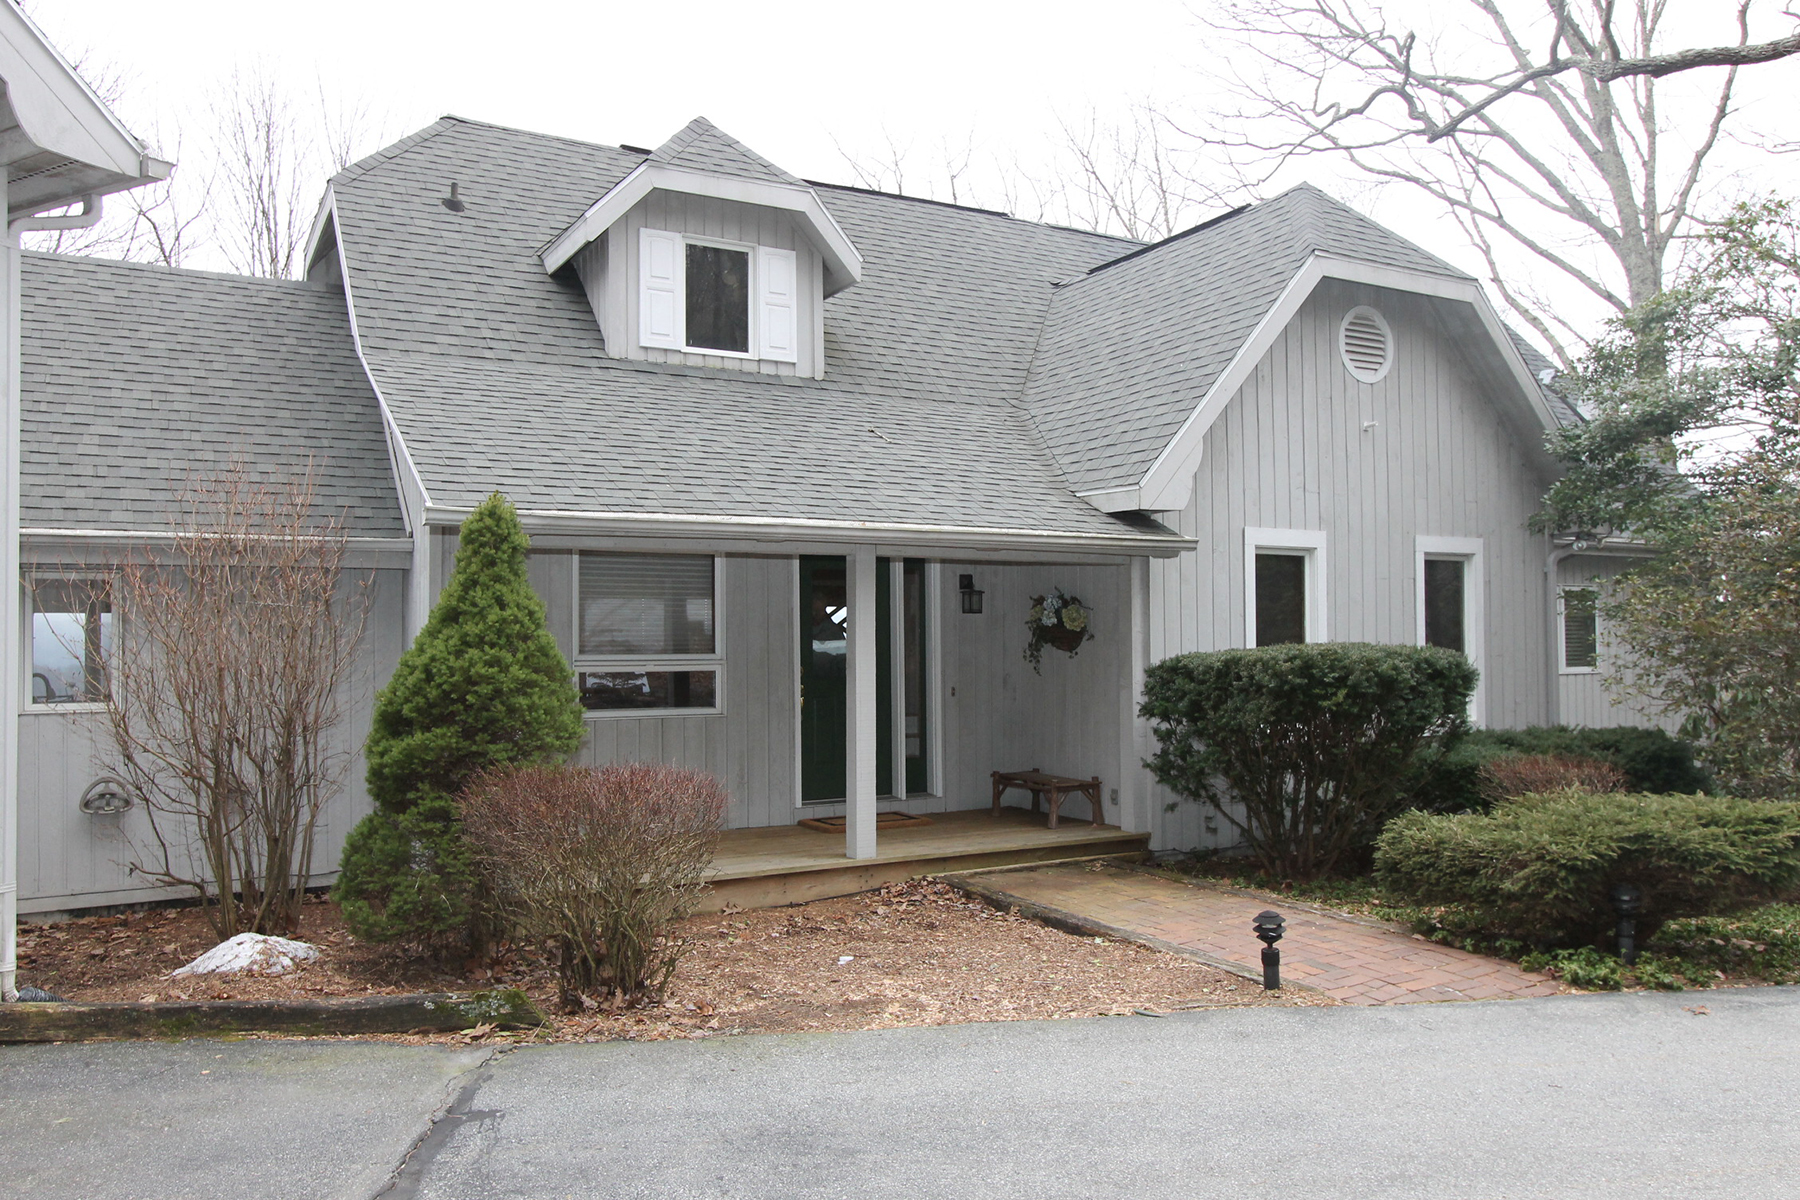 Single Family Home for Sale at BOONE - YONAHLOSSEE 370 Far Sawrey, Boone, North Carolina 28607 United States